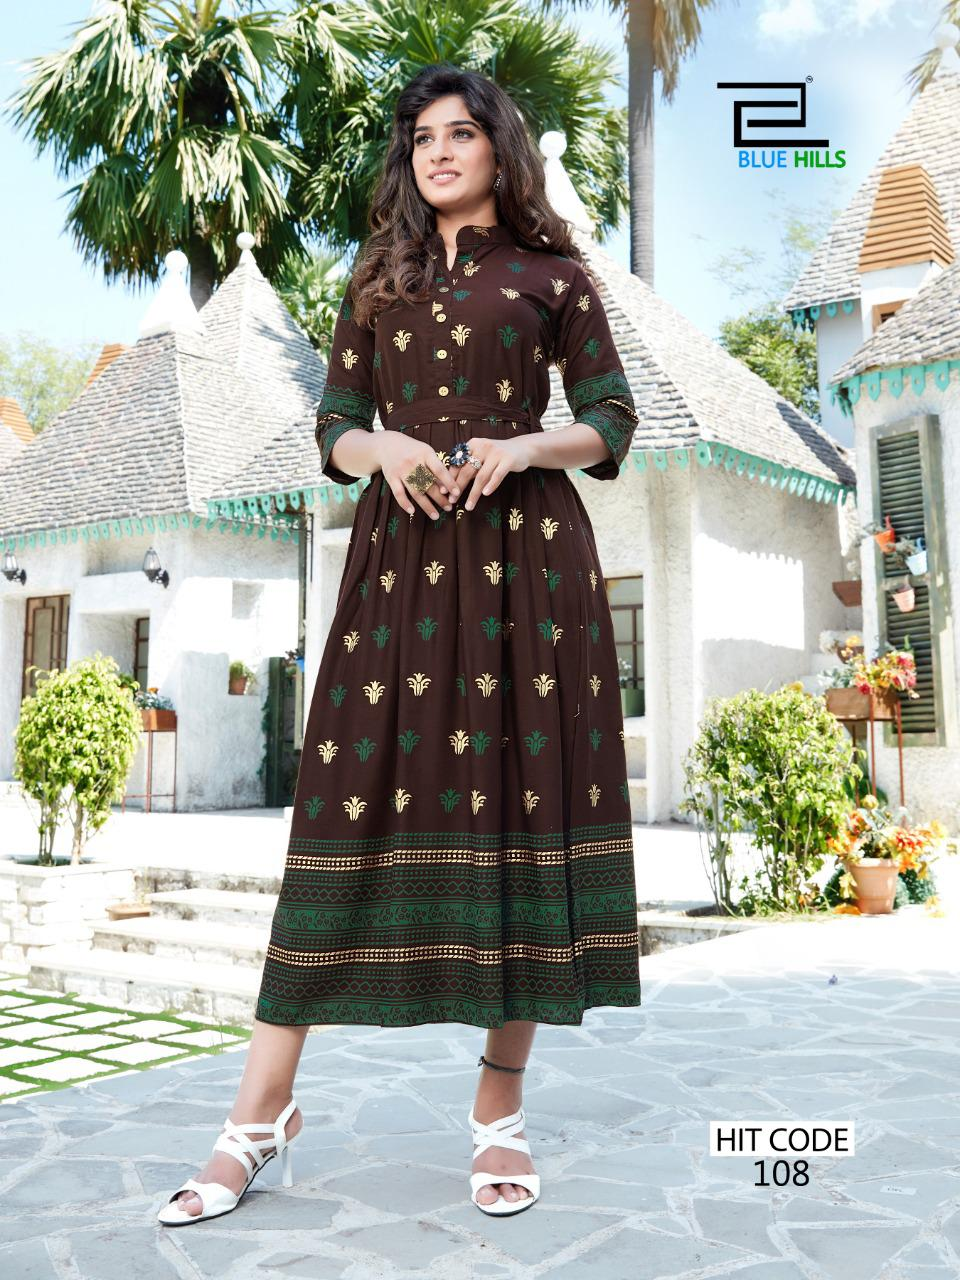 Blue Hills Walkway Hit Kurti Wholesale Catalog 10 Pcs 2 - Blue Hills Walkway Hit Kurti Wholesale Catalog 10 Pcs